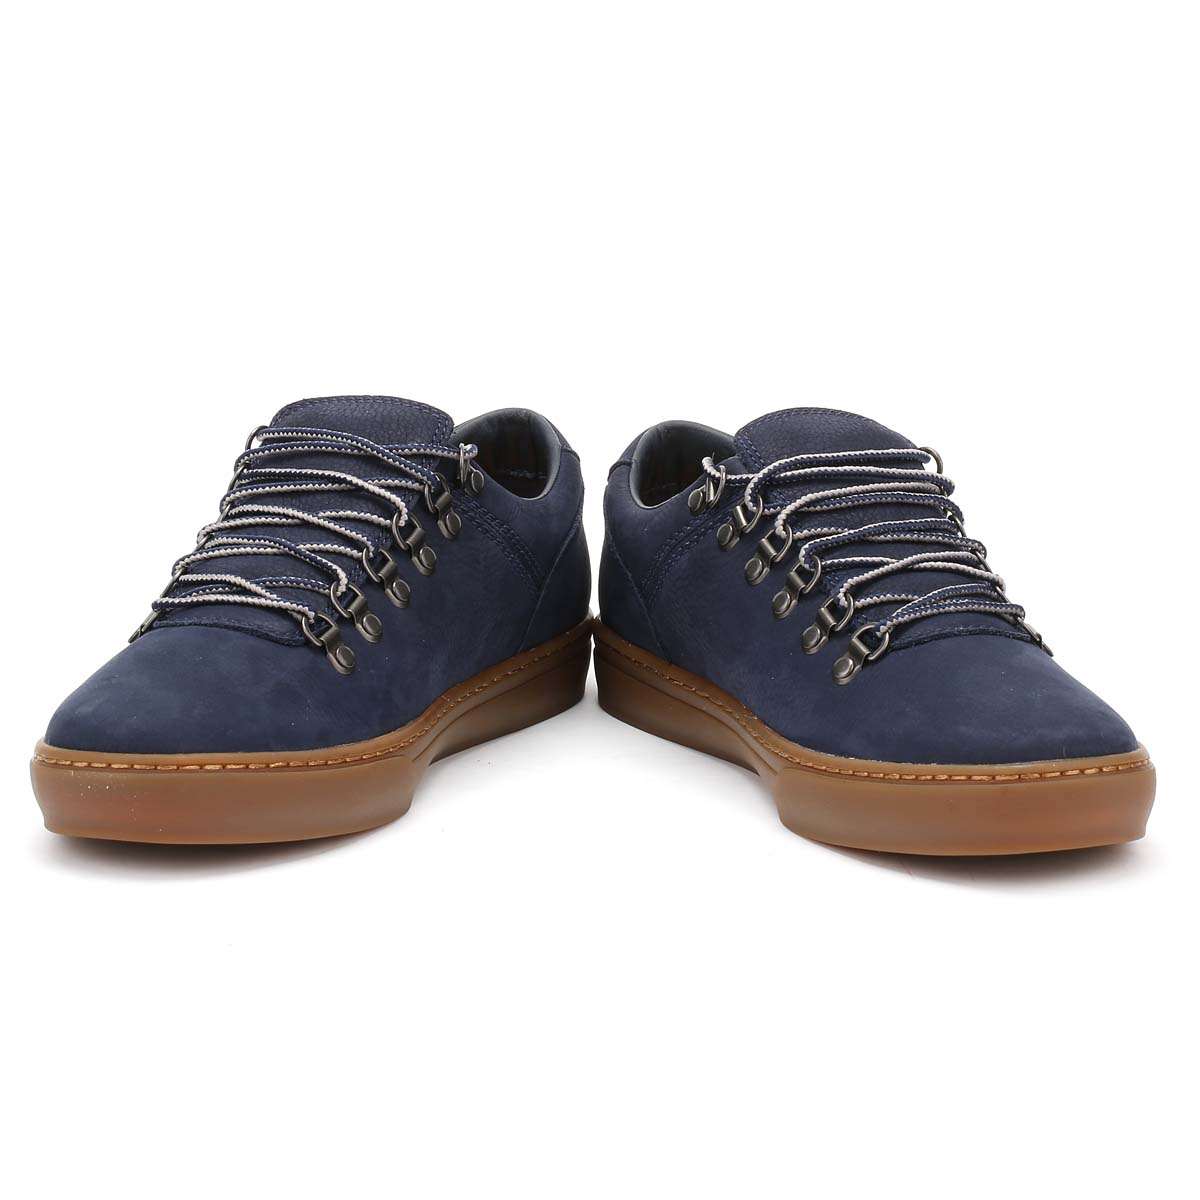 Timberland Mens Oxford Shoes